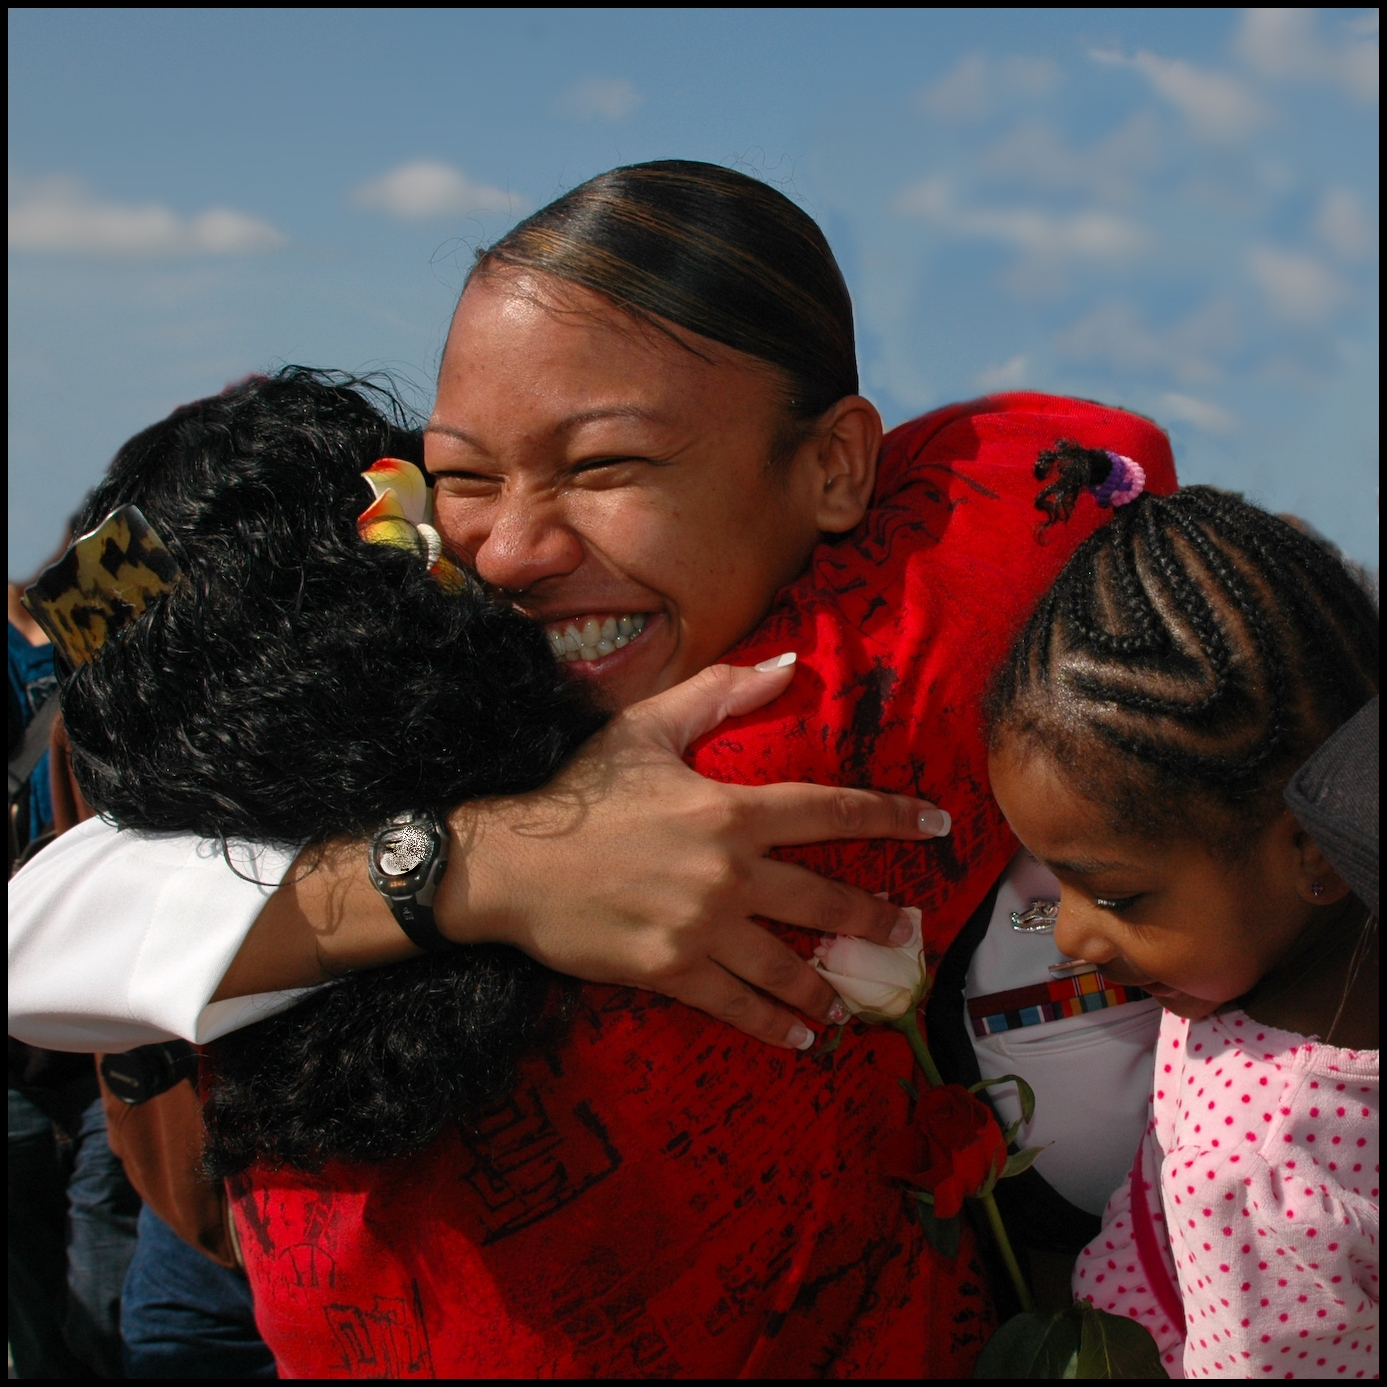 A sailor on leave hugs her children, seeing them for the first time. She has a huge smile on her face.